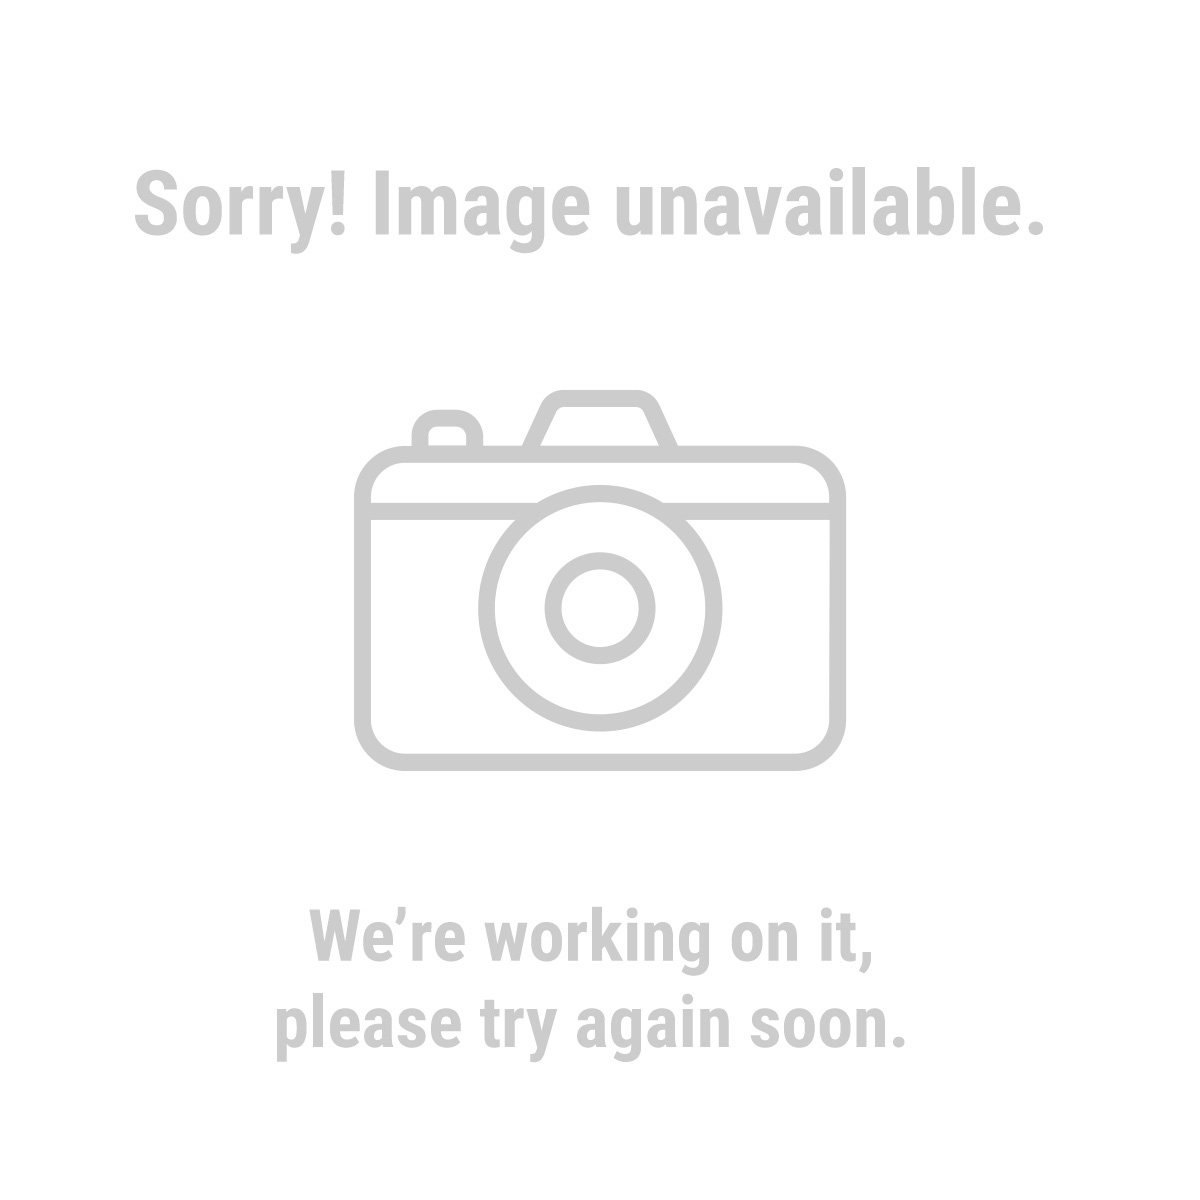 Central-Machinery 68148 10 Amp, 120 Volt Demolition Hammer